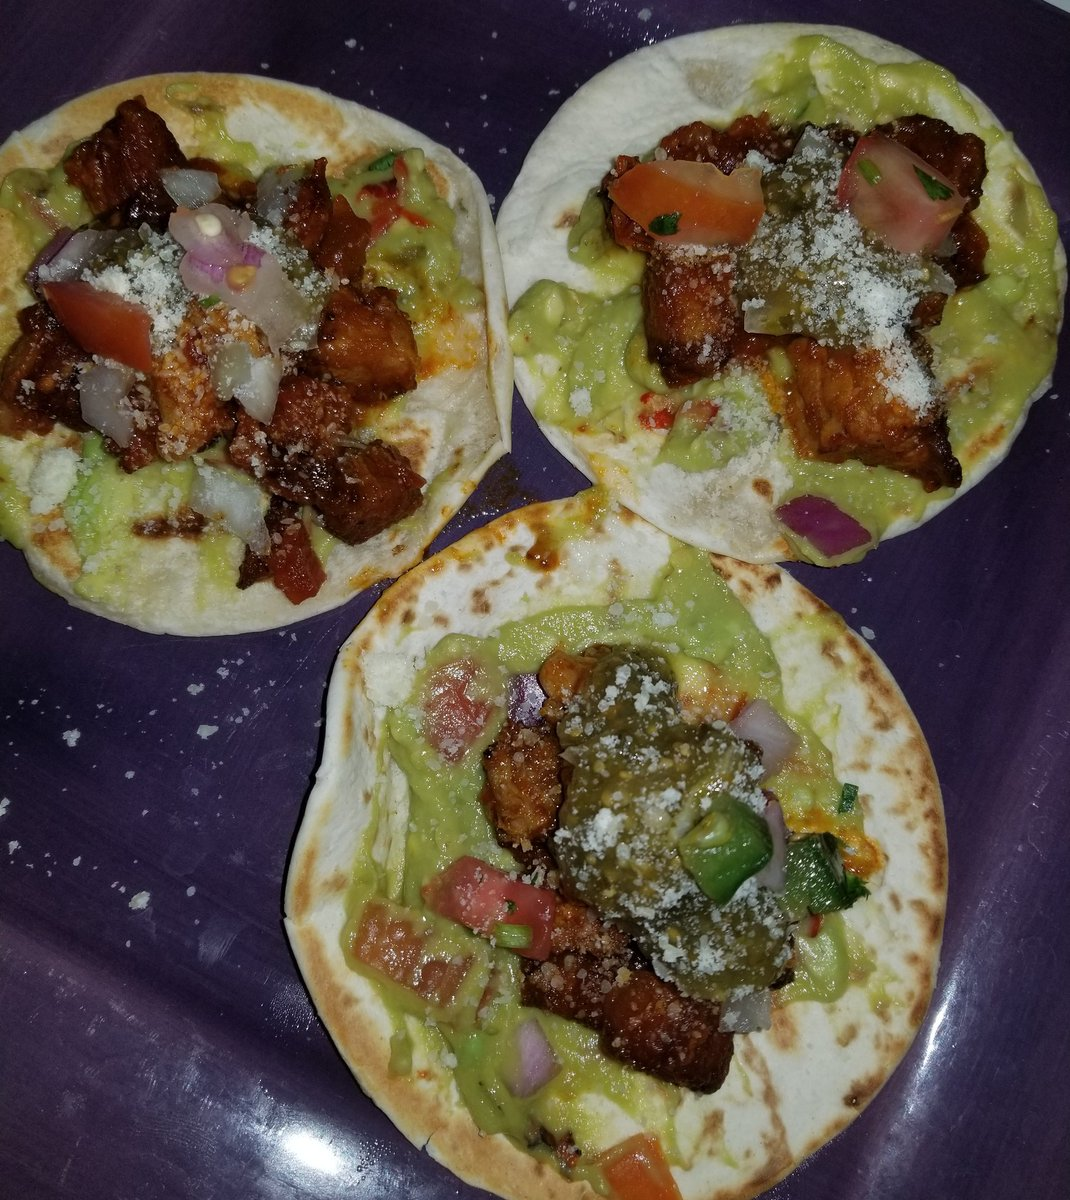 Homemade Pork Belly Tacos.... These were  #Dinner pic.twitter.com/SqE5OpL3kM